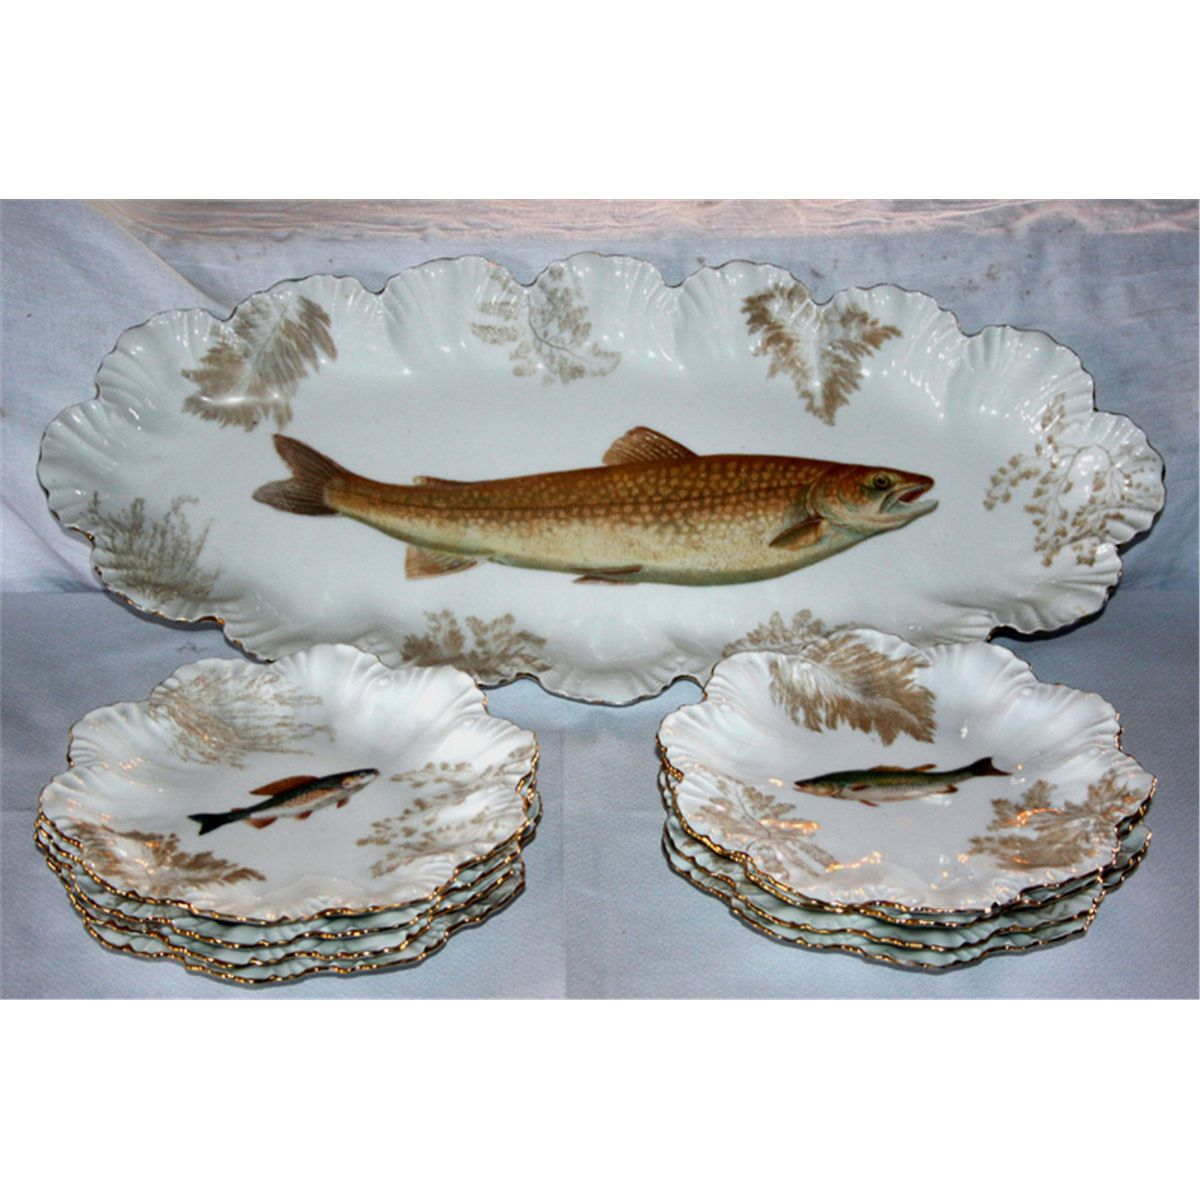 sc 1 st  iCollector.com & Limoges - Fish Plates